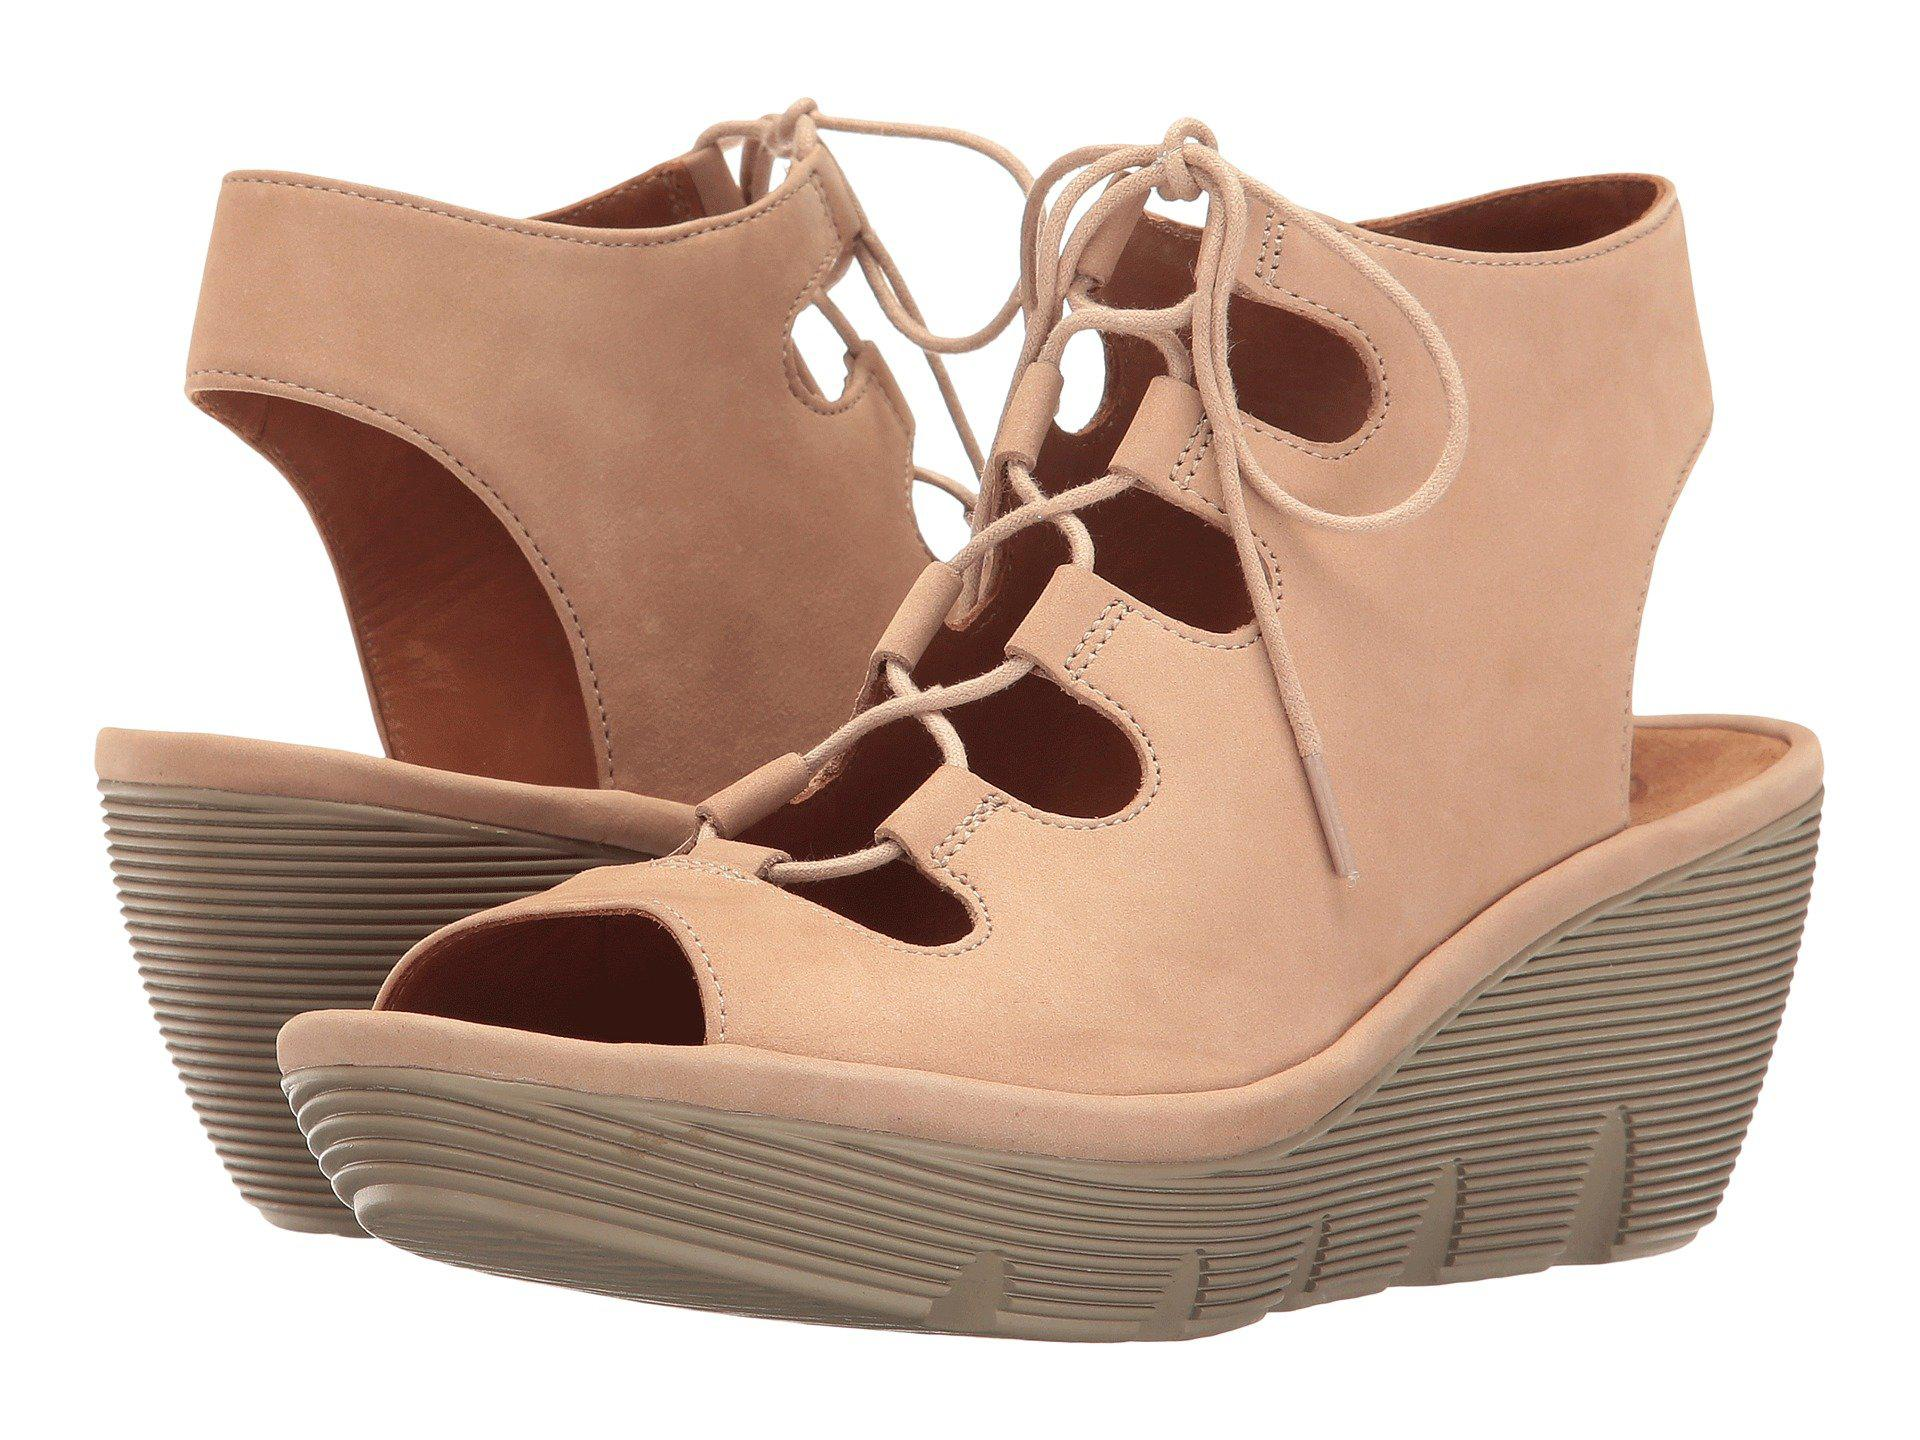 5f8839561f0 Lyst - Clarks Clarene Grace in Natural - Save 22%